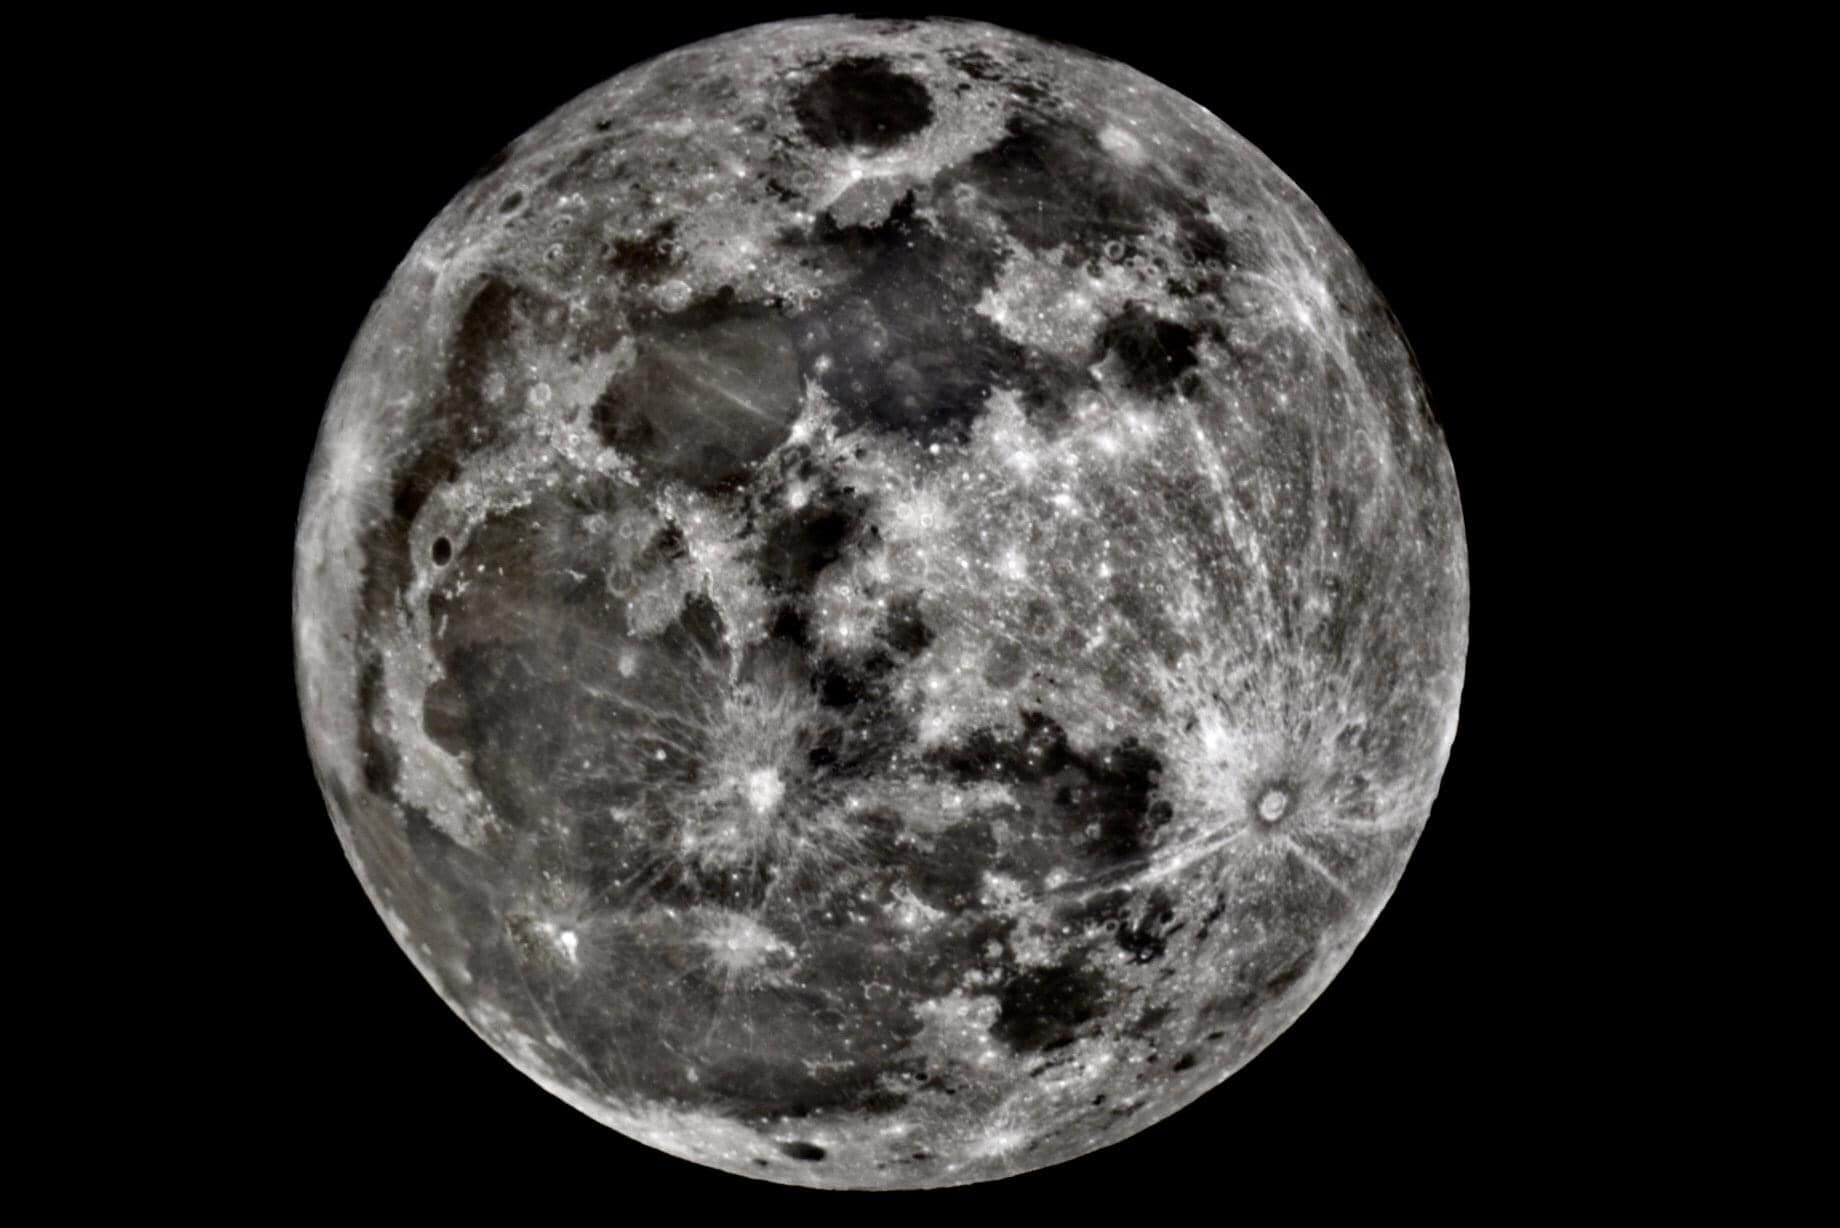 The moon takes center stage Saturday night